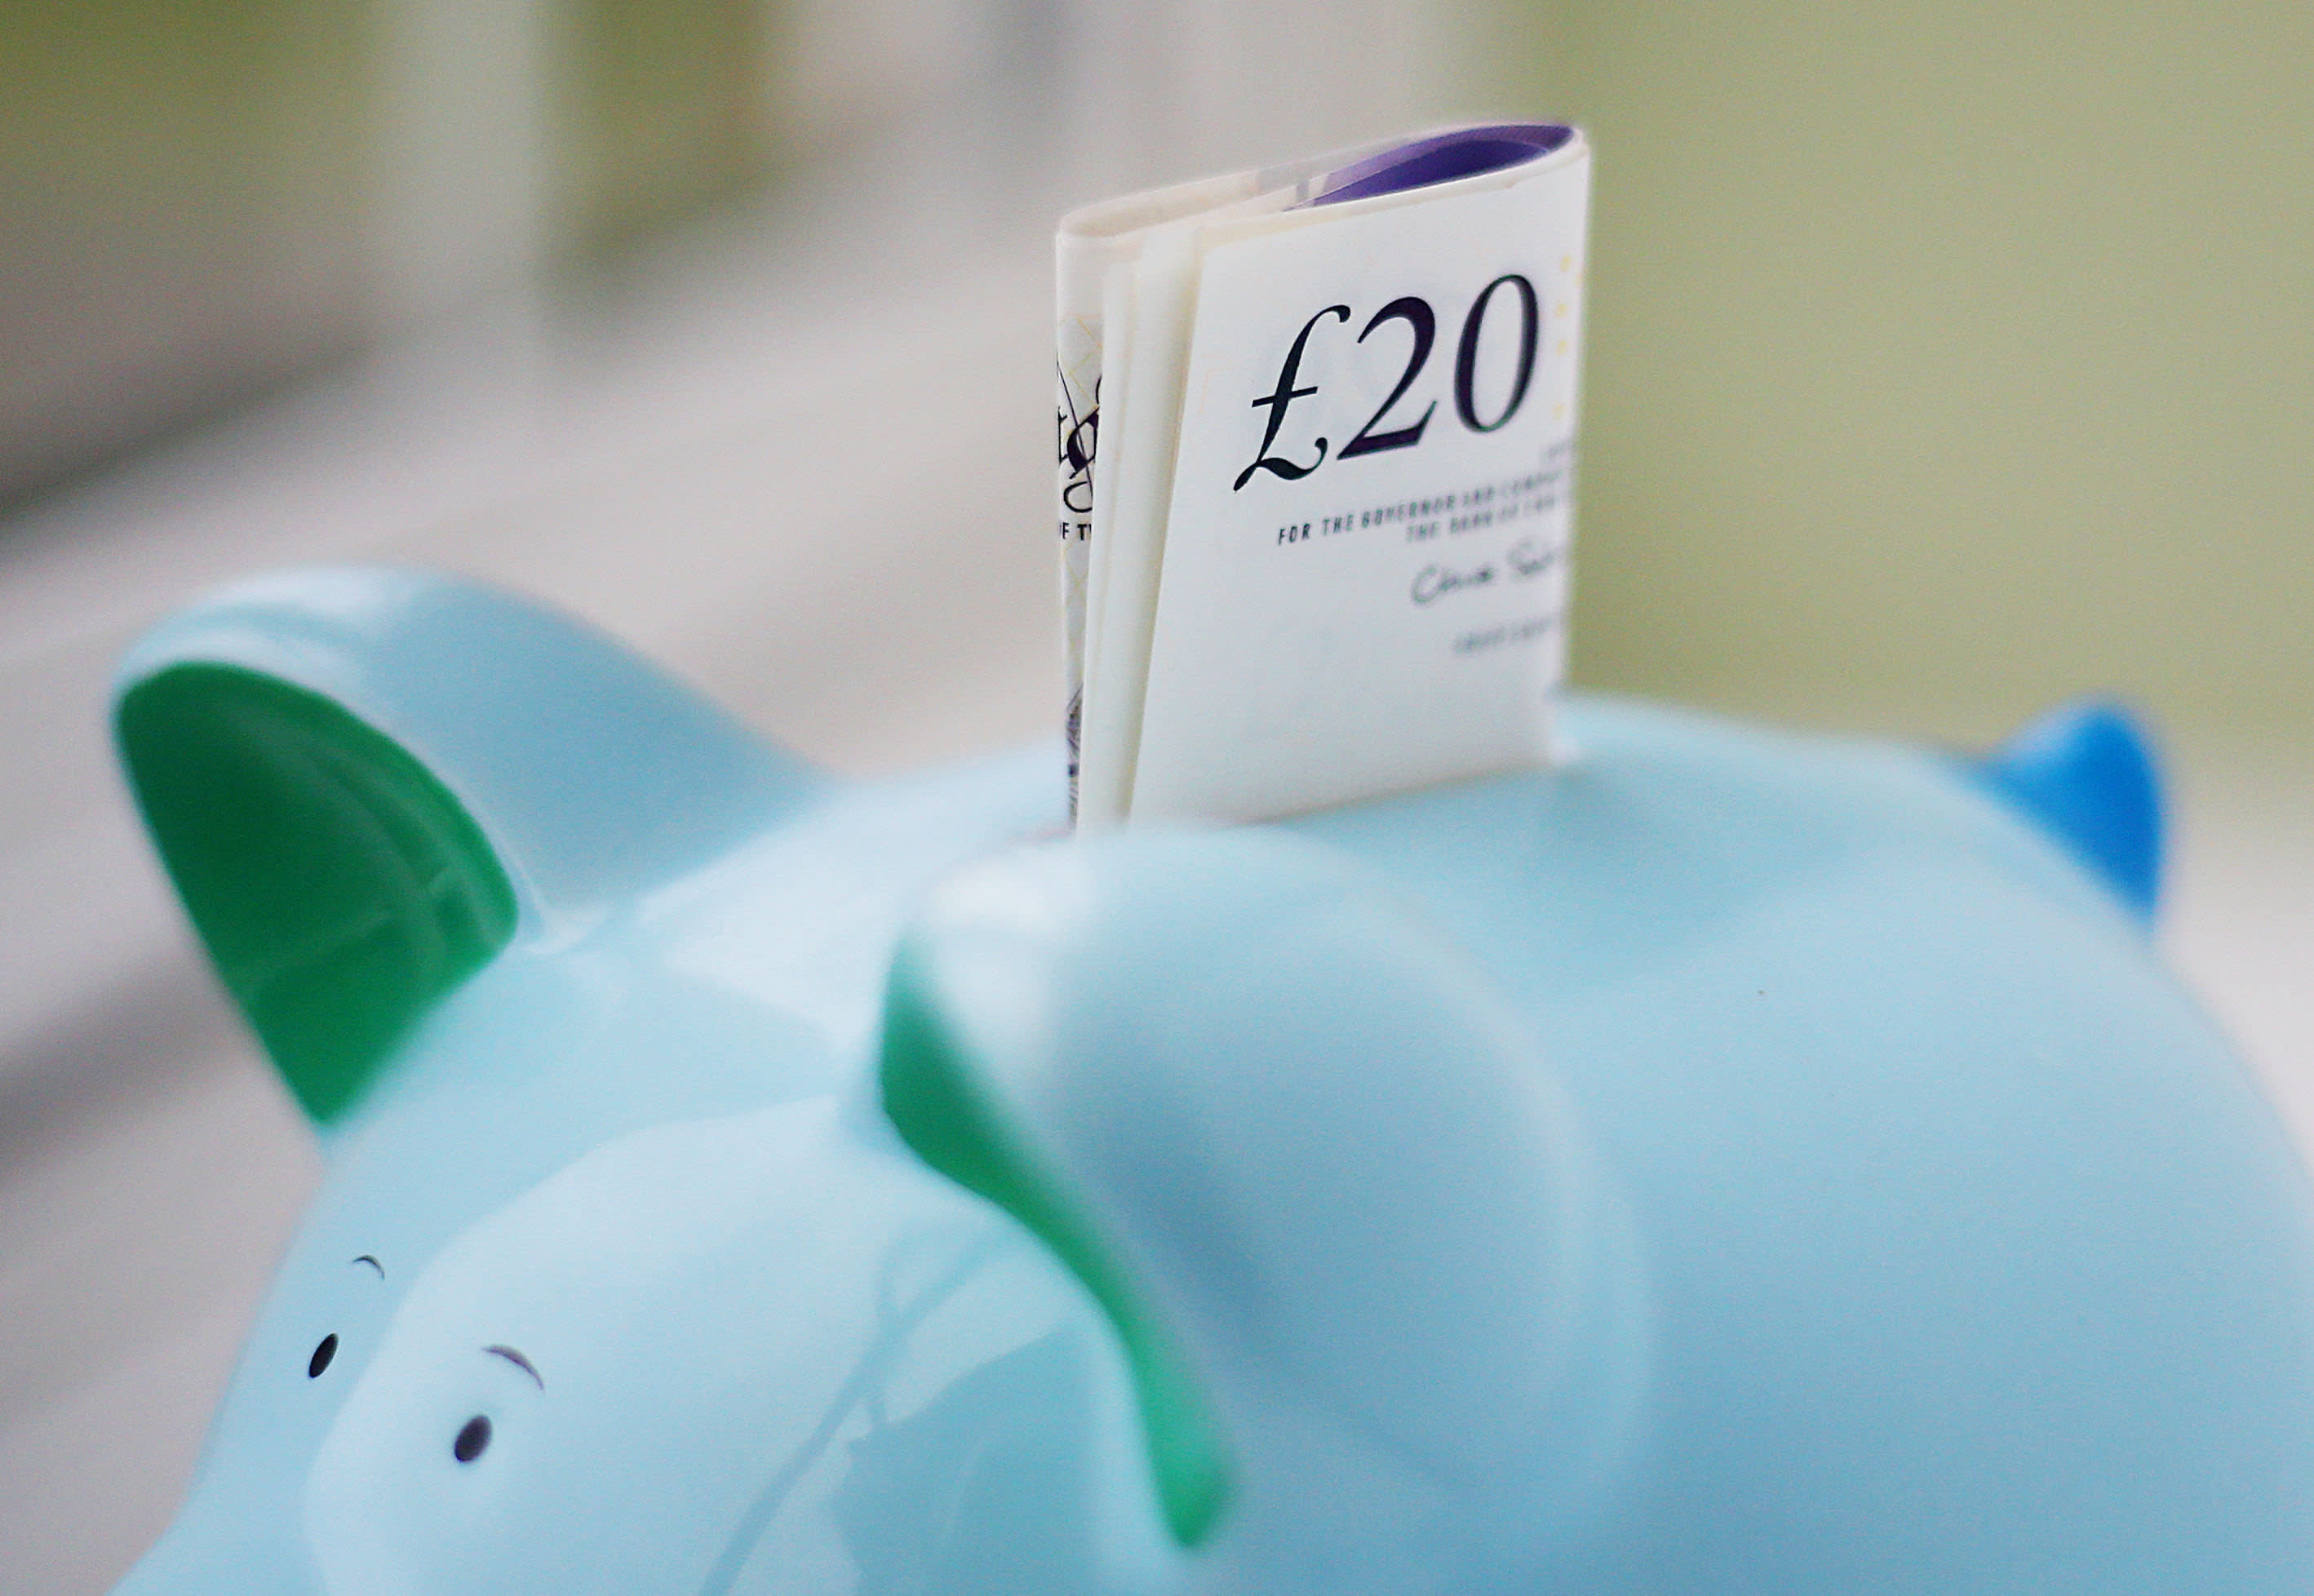 Defined benefit transfer values hit record high